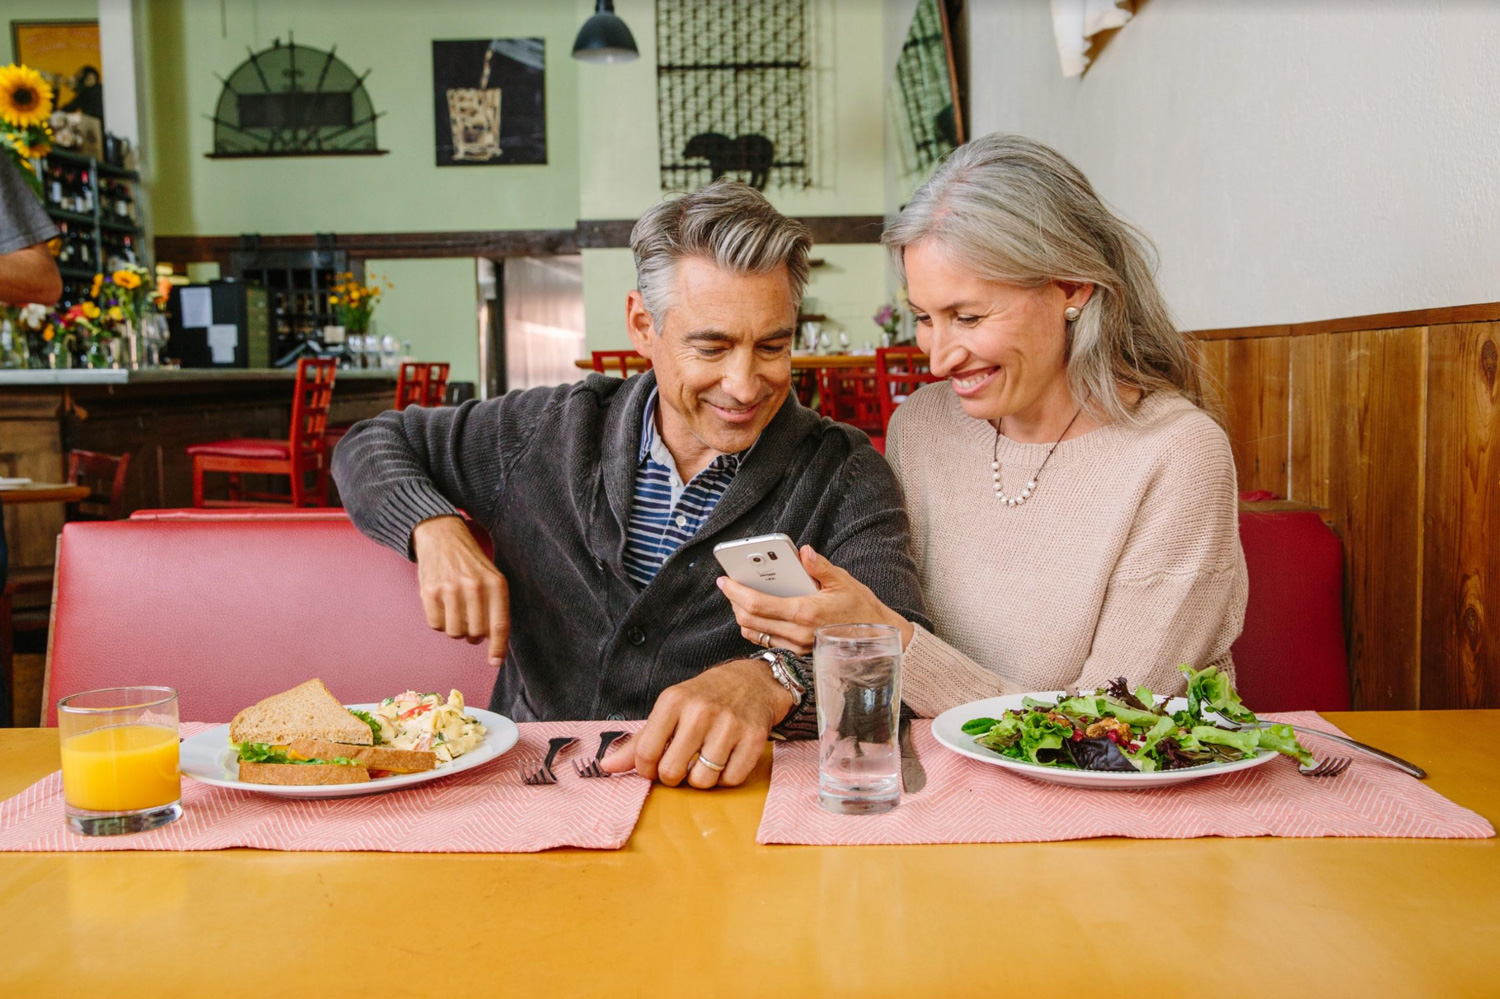 A couple look at a mobile phone while having a meal in a restaurant